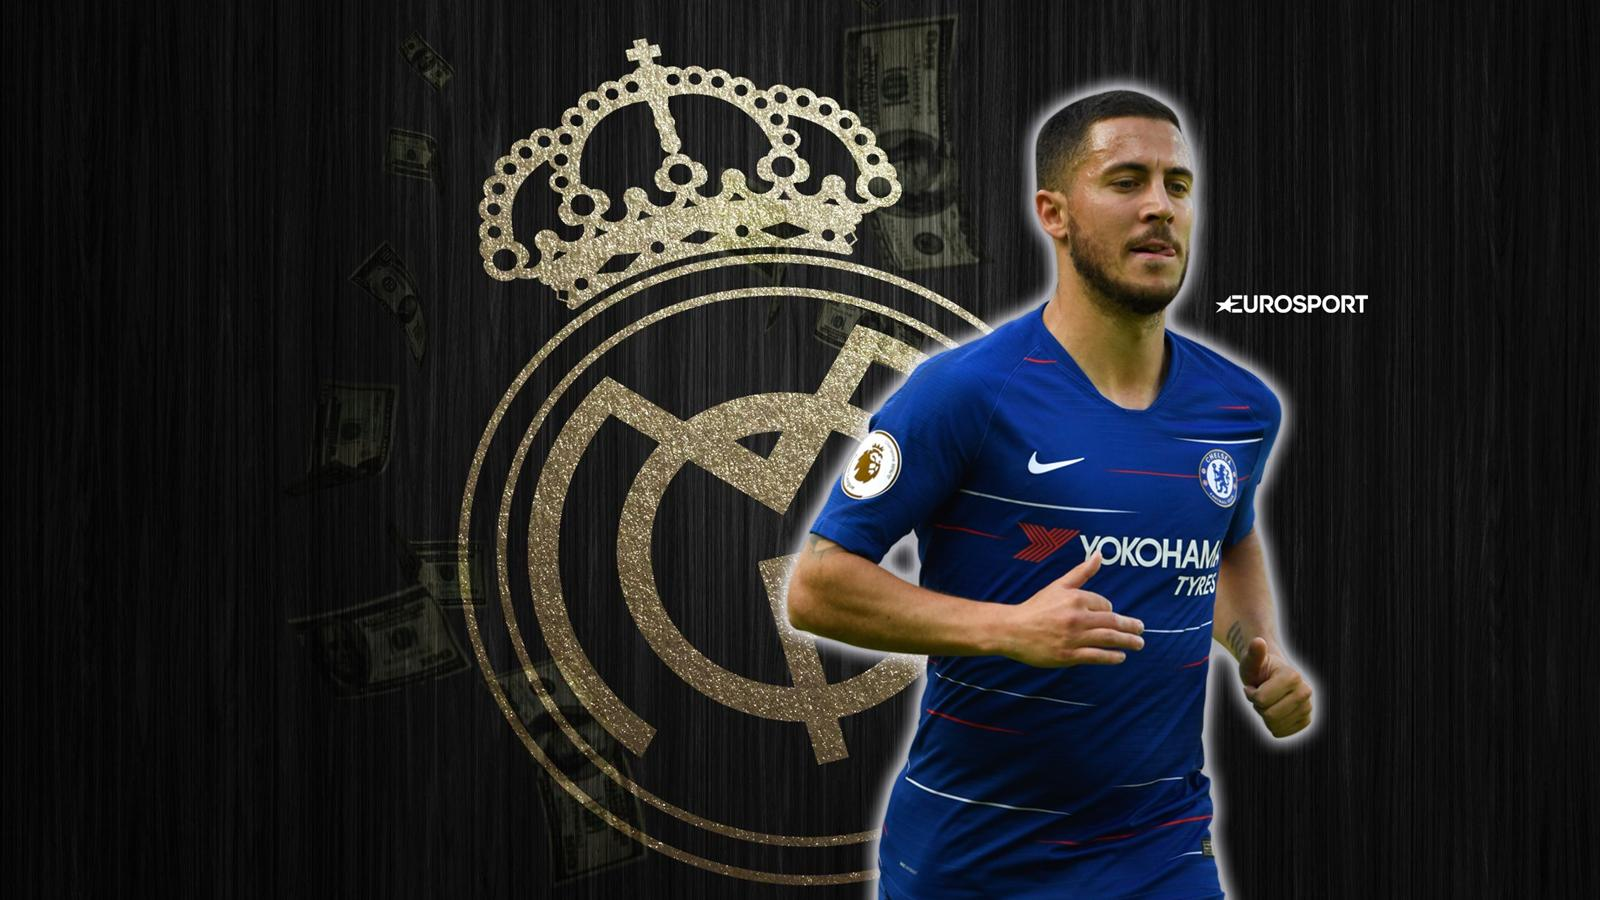 e0f8baf46f1 VIDEO - Euro Papers  Real Madrid to replace Cristiano Ronaldo with Hazard -  Transfers - Video Eurosport UK